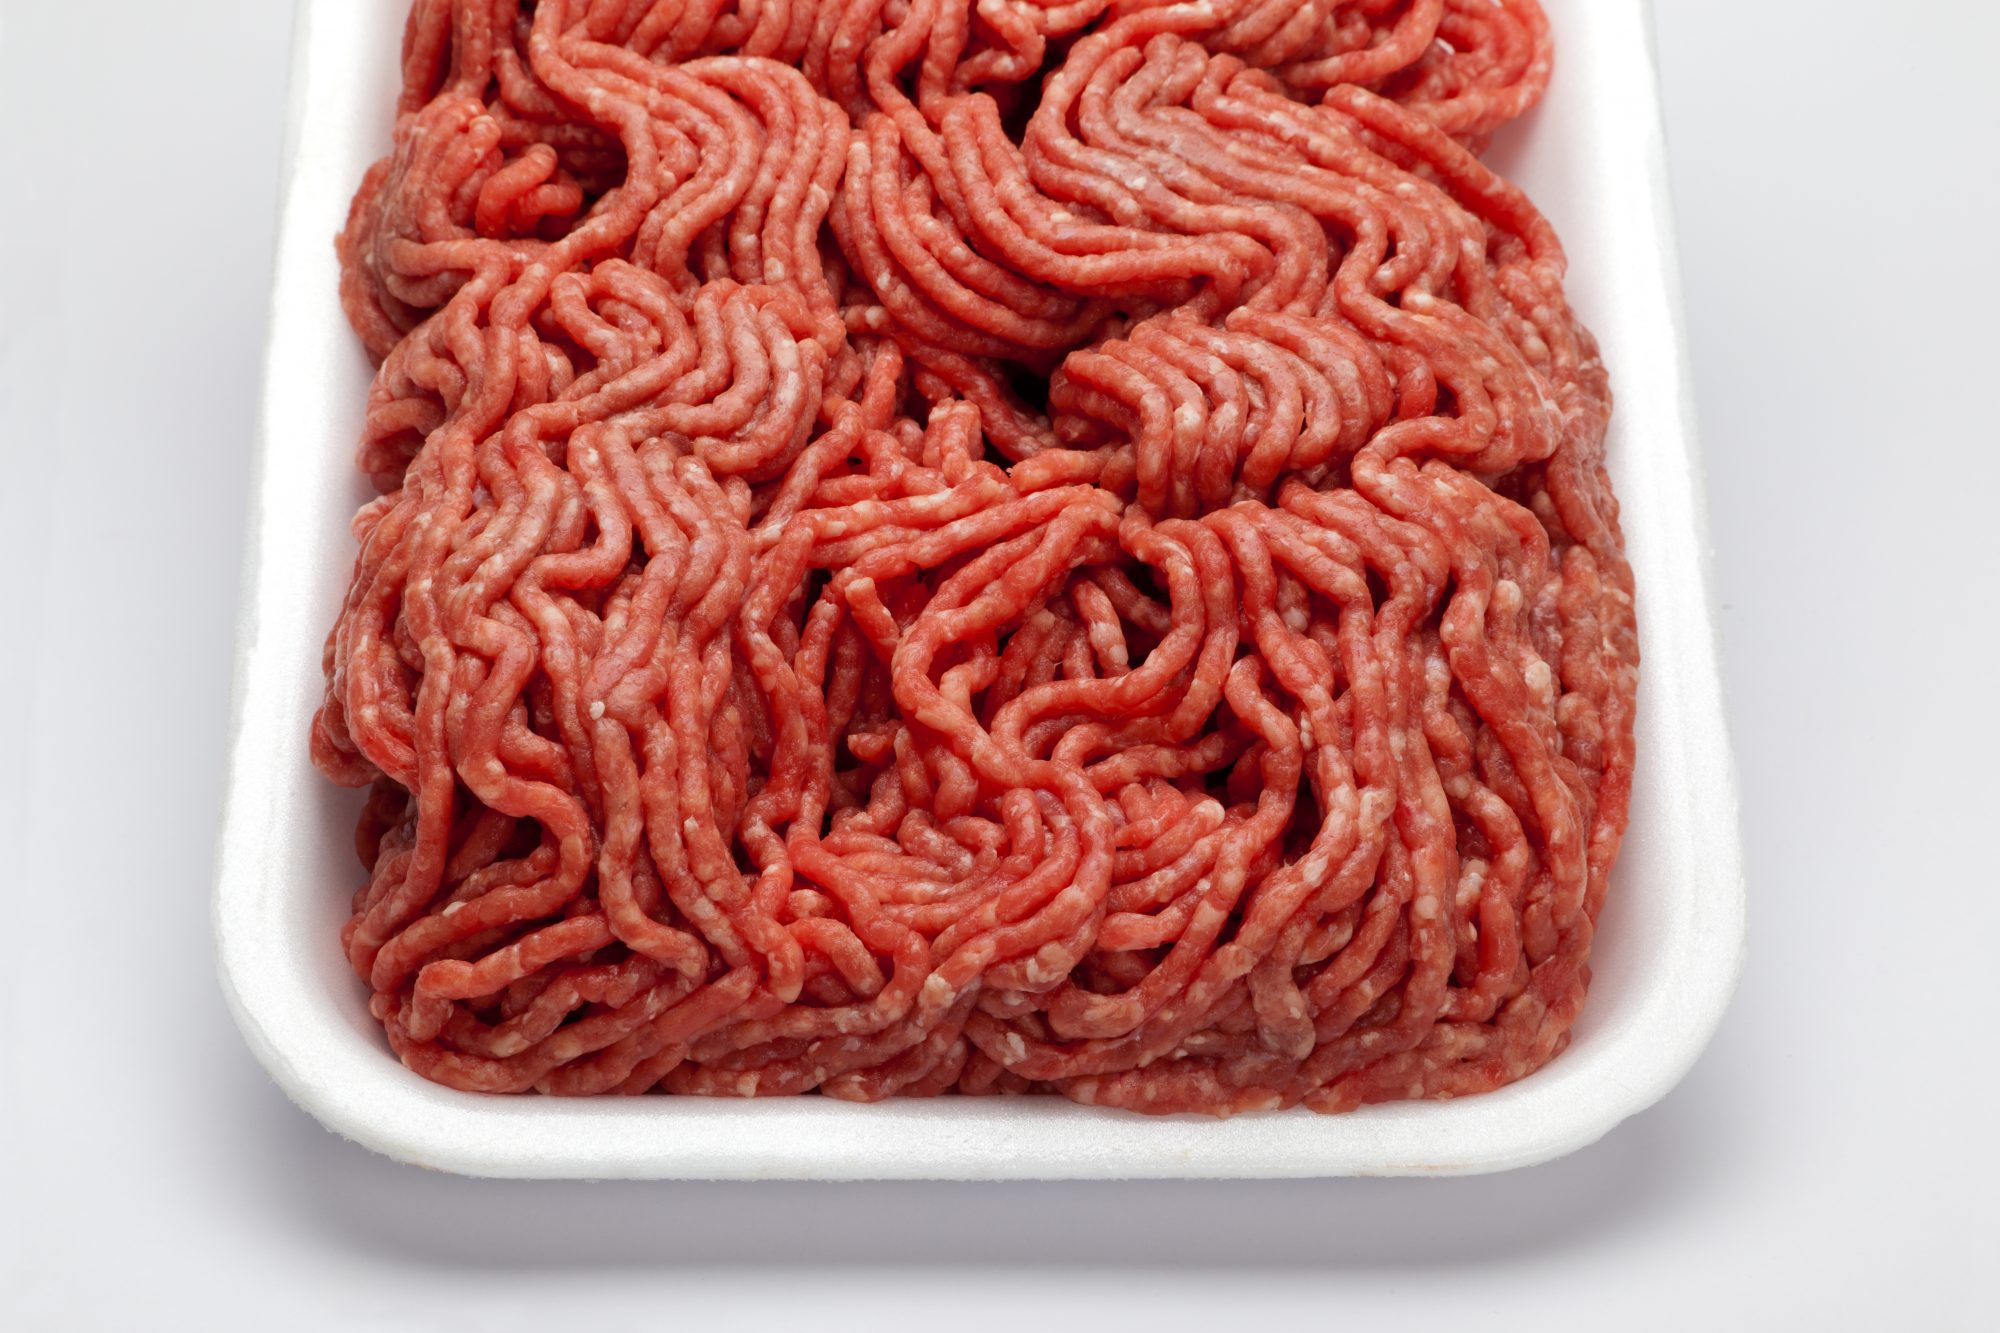 Getty beef 9/4/19